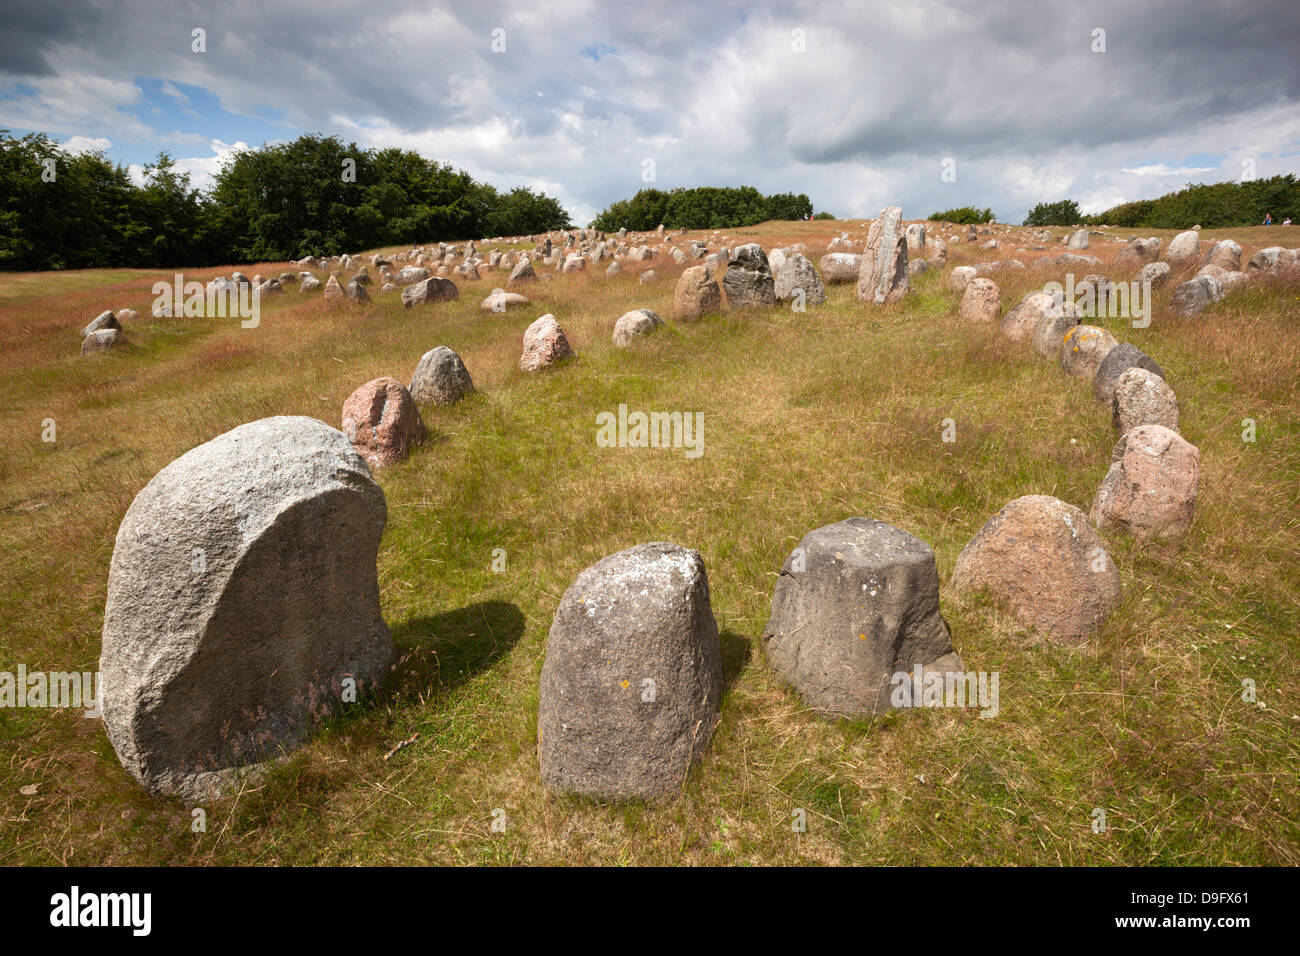 Viking burial ground with stones placed in oval outline of a Viking ship, Lindholm Hoje, Aalborg, Jutland, Denmark, - Stock Image